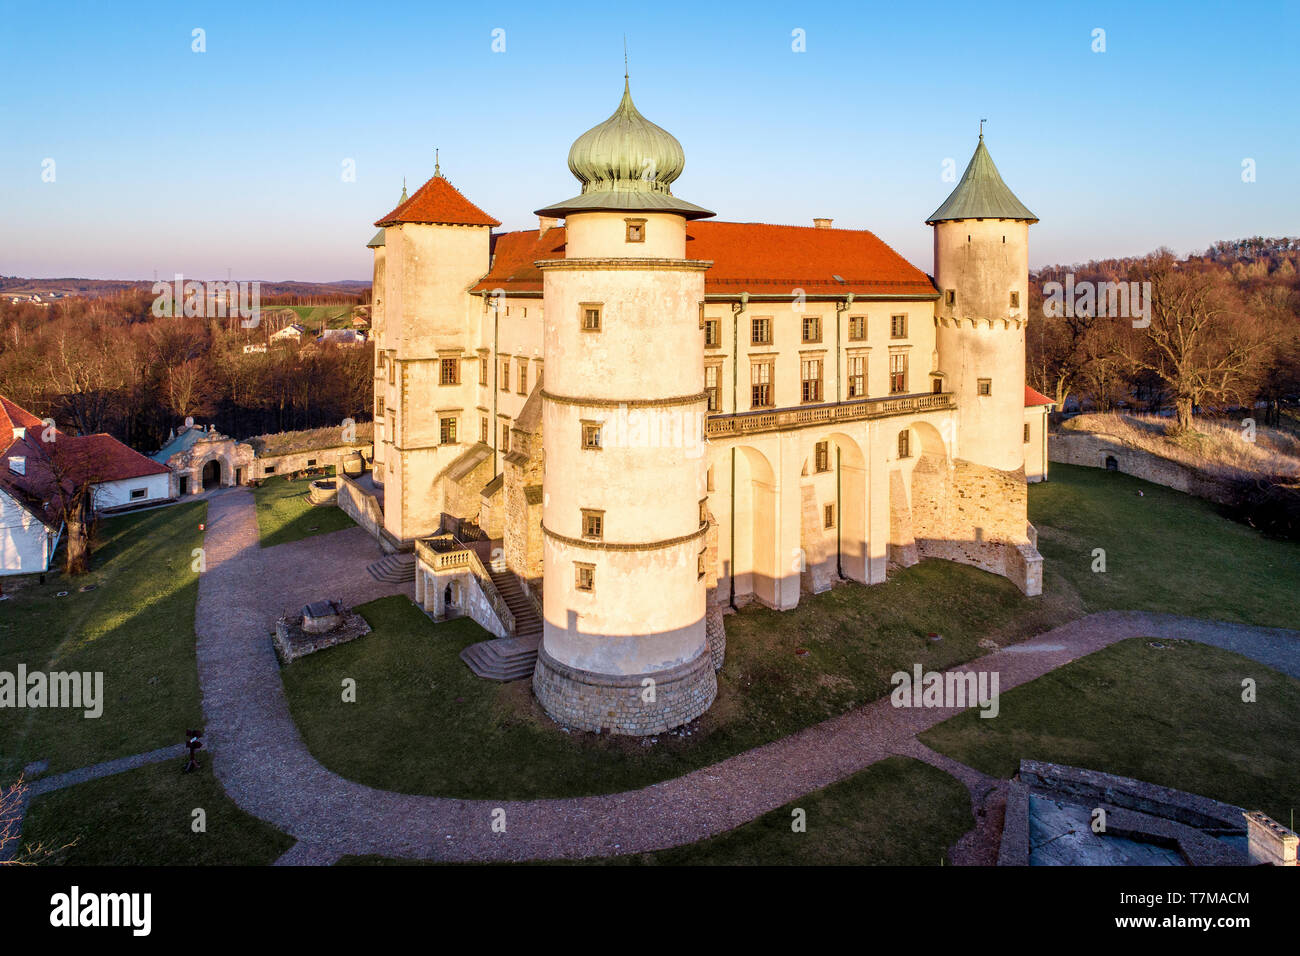 Poland. Renaissance, partly Baroque Castle on the hill in Nowy Wiśnicz. Presently owned by Polish state. Aerial view in spring. Sunset light. - Stock Image